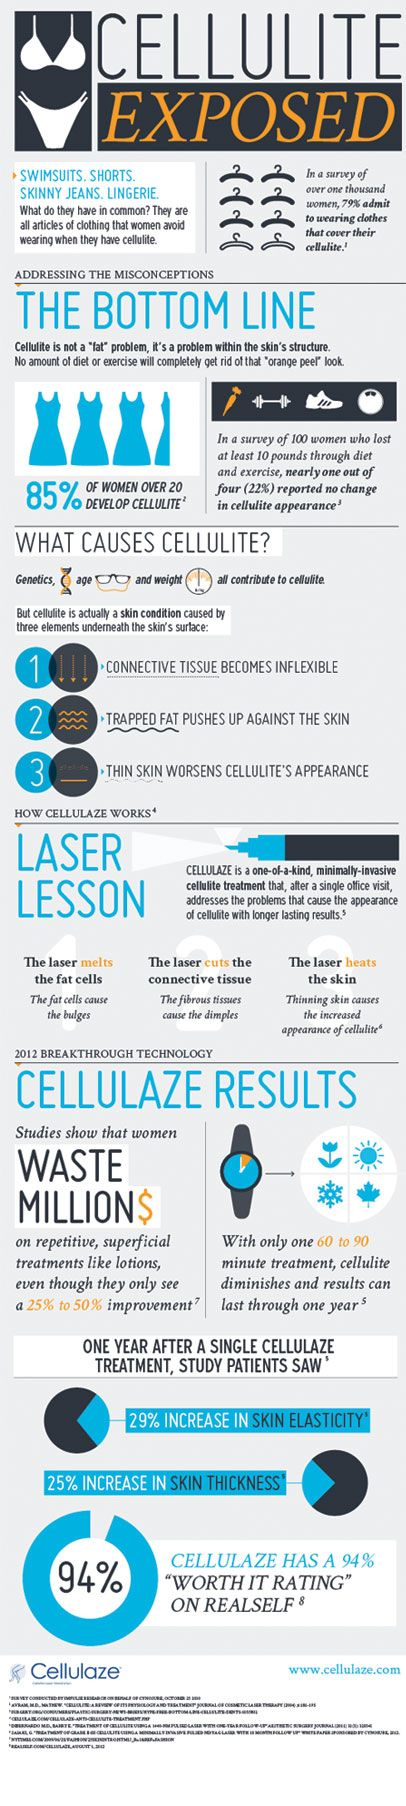 Learn everything there is to know about #cellulite in our new #infographic: Cellulite Treatment